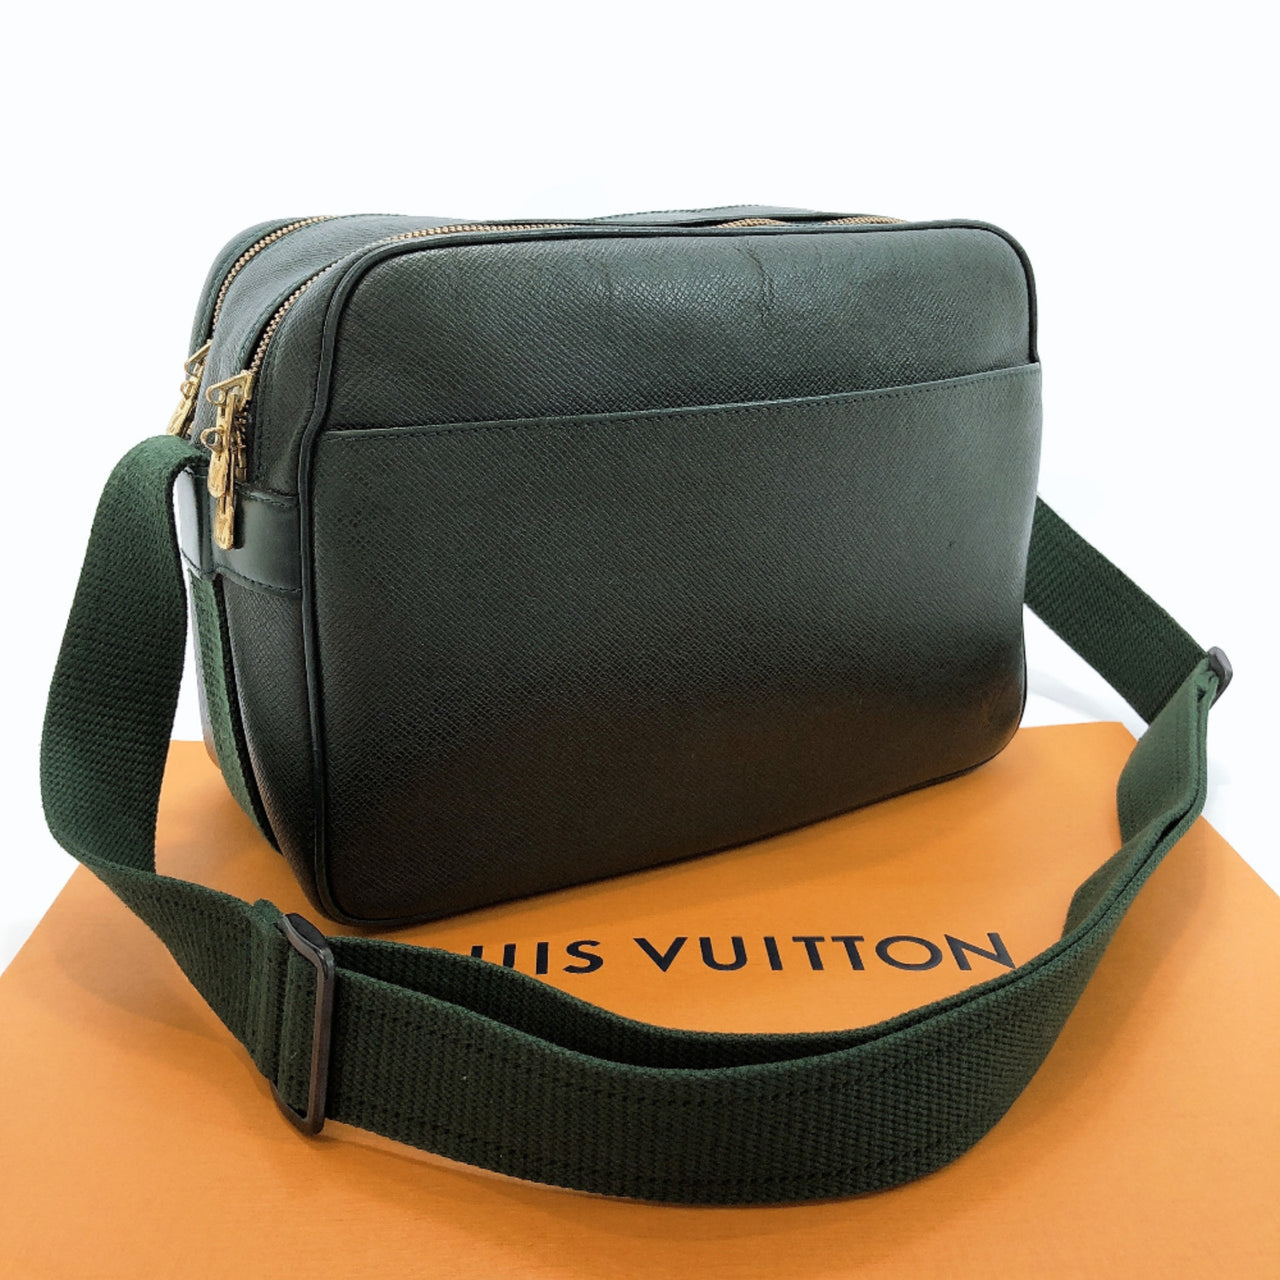 LOUIS VUITTON Shoulder Bag M30154 reporter Aldoise Taiga green mens Used